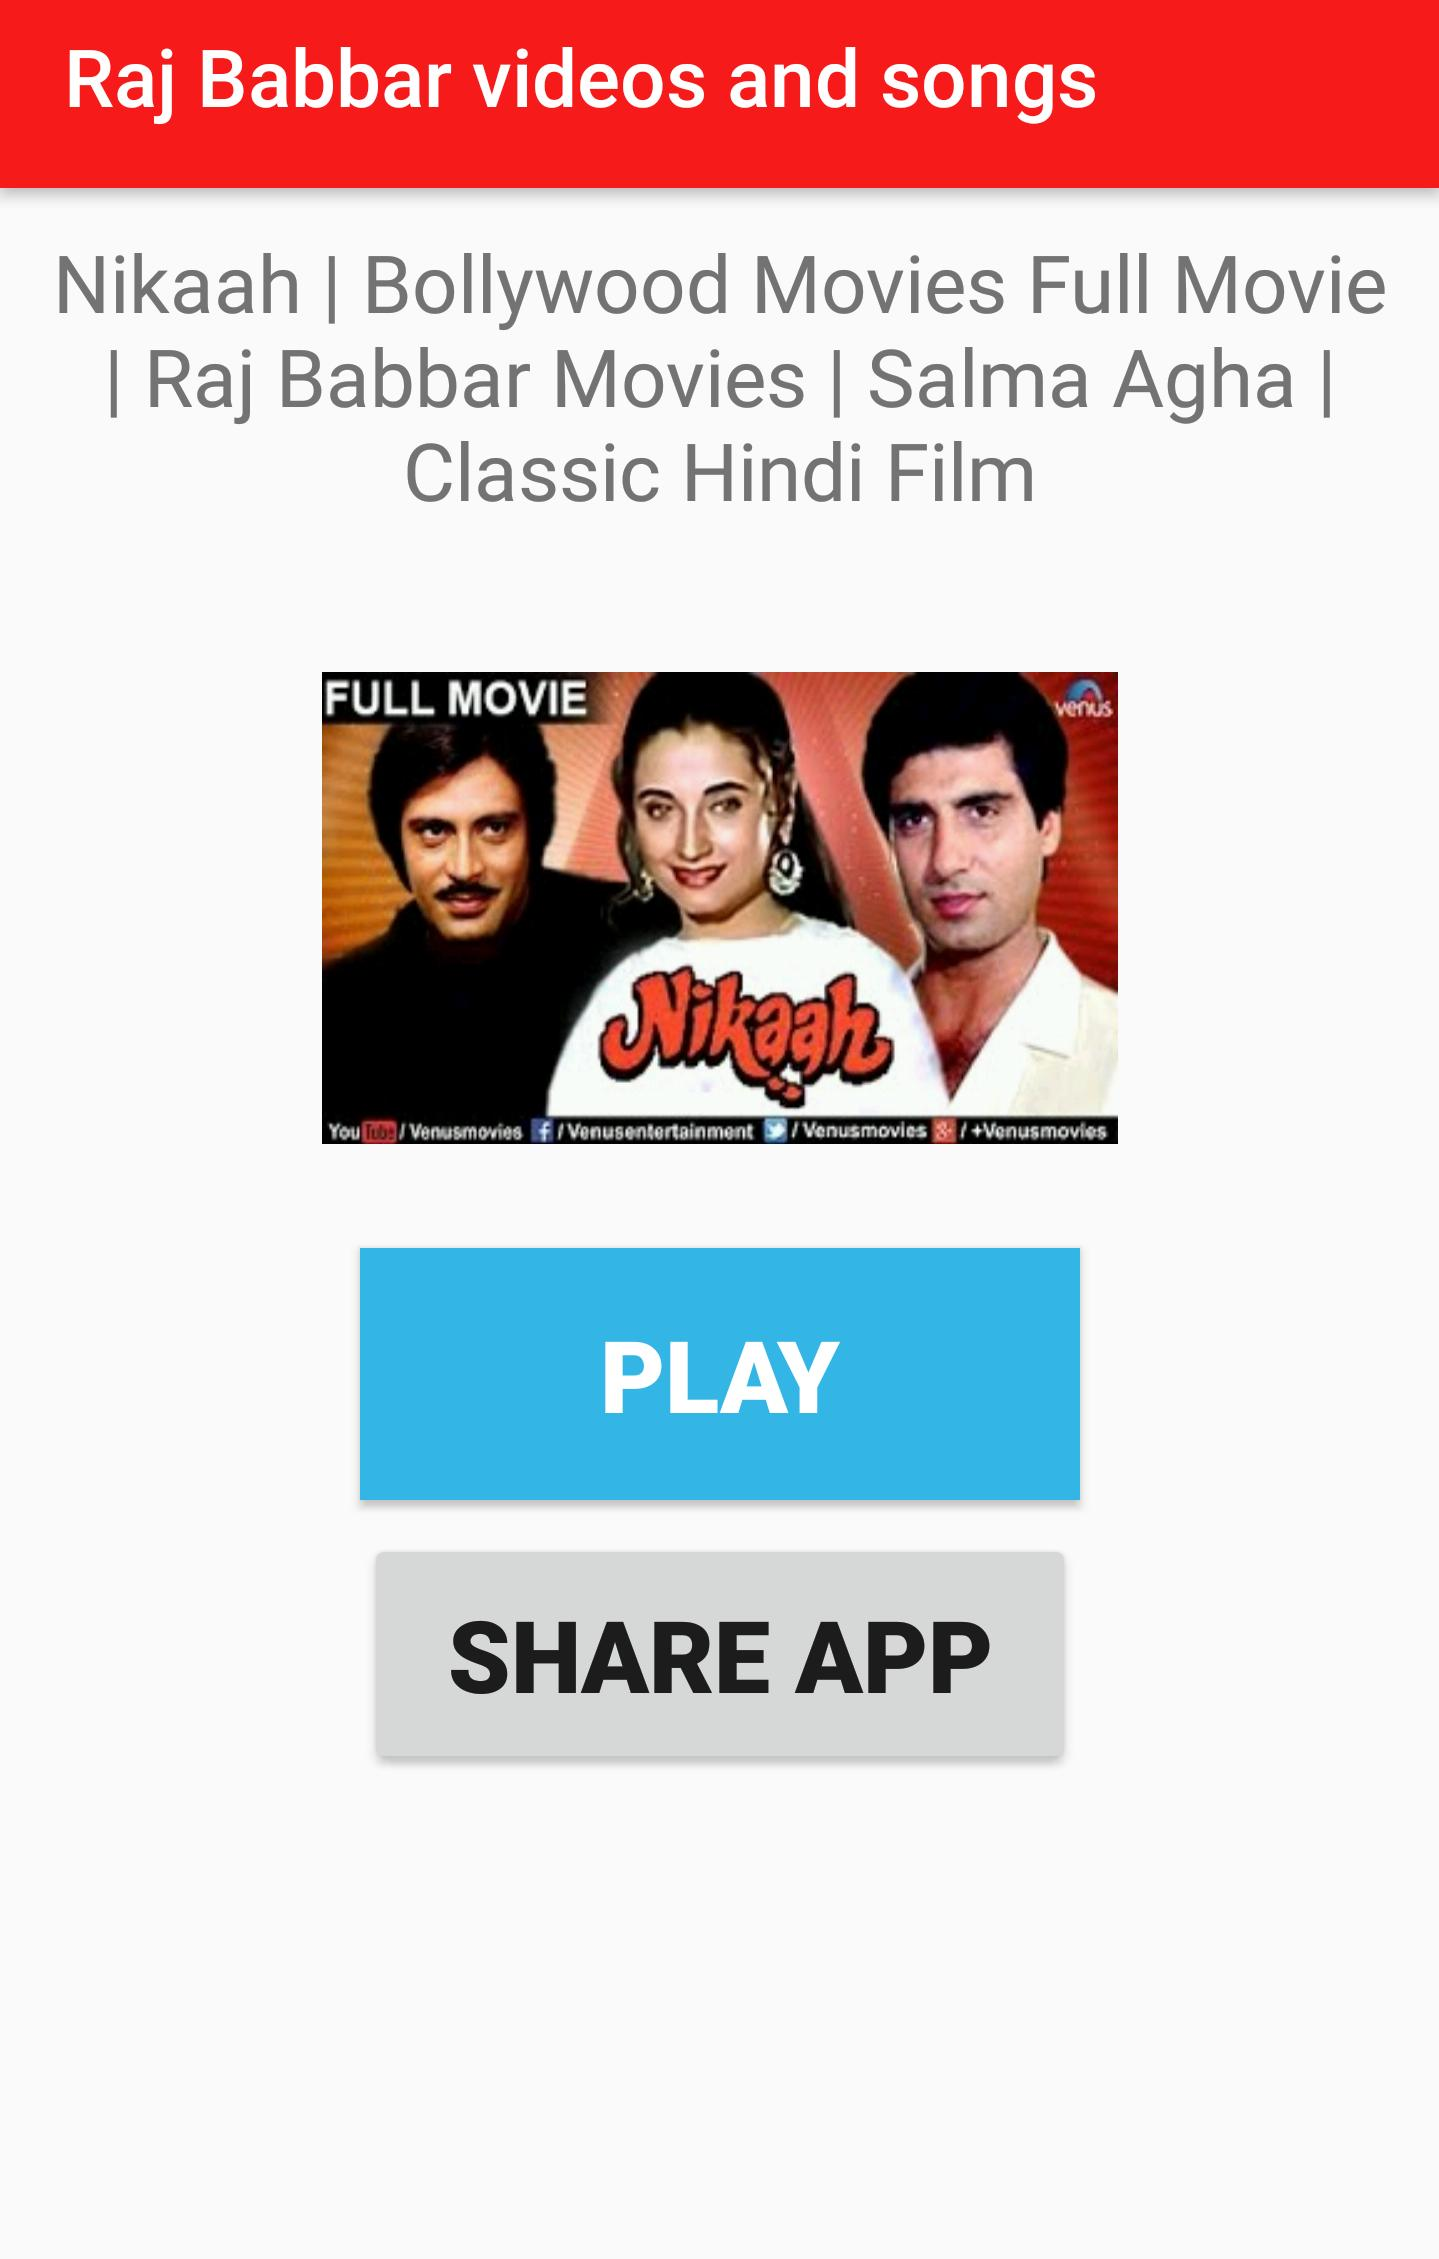 Raj Babbar Movies Videos Songs For Android Apk Download